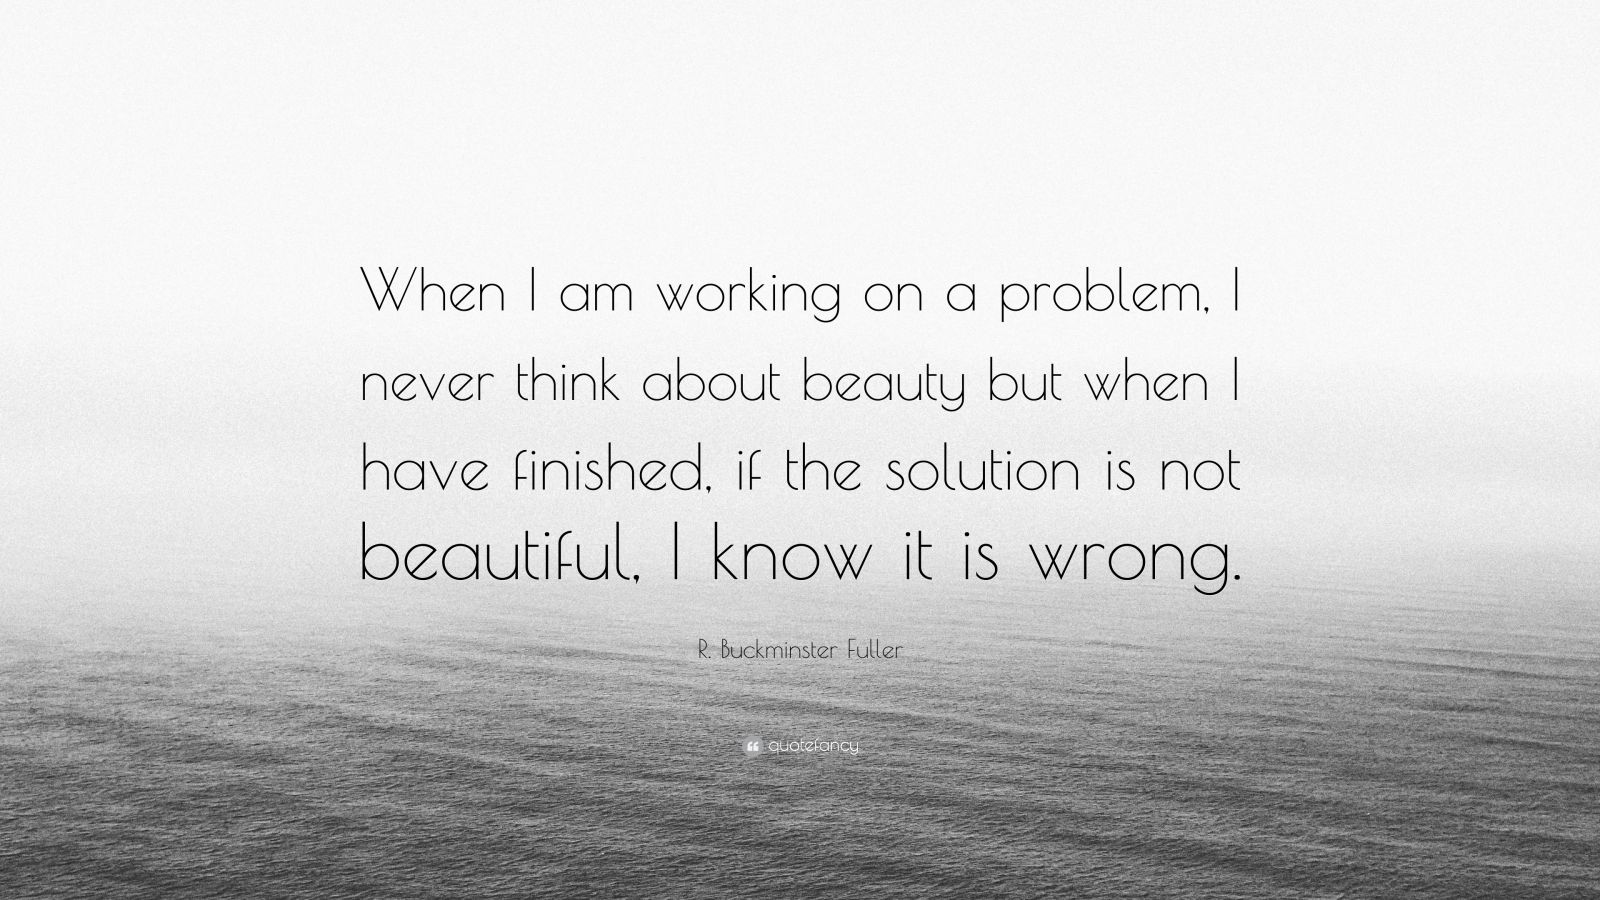 """R. Buckminster Fuller Quote: """"When I am working on a problem, I never think about beauty but when I have finished, if the solution is not beautiful, I know it is wrong."""""""